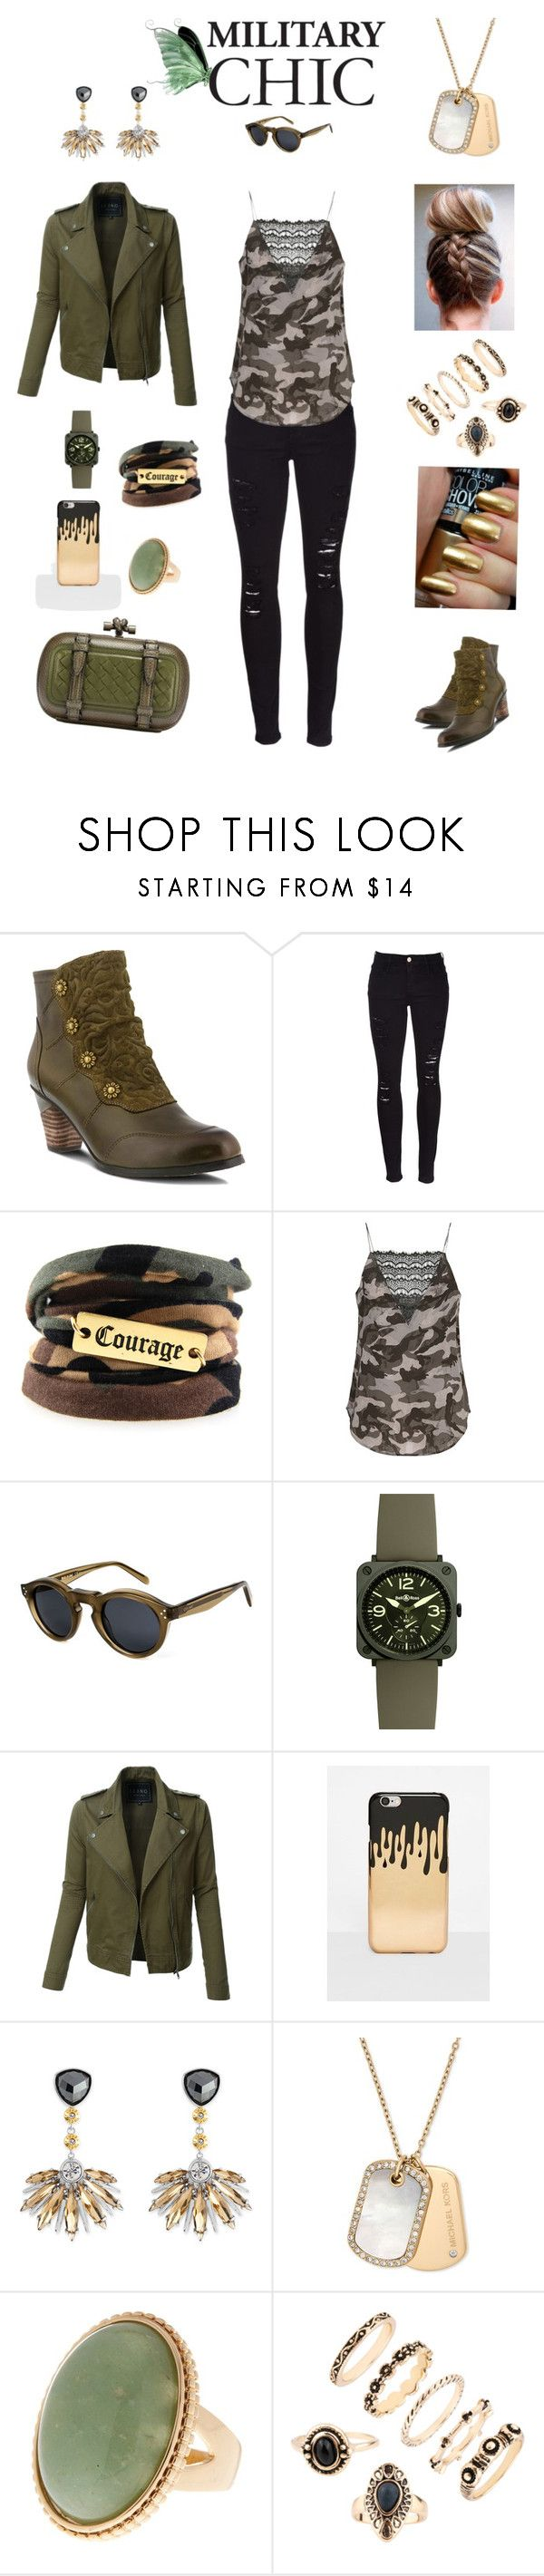 """MILITARY CHIC"" by hopesparksembers ❤ liked on Polyvore featuring Spring Step, Frame, Custommade, CÉLINE, Bell & Ross, LE3NO, Missguided, Henri Bendel, Michael Kors and GREEN"